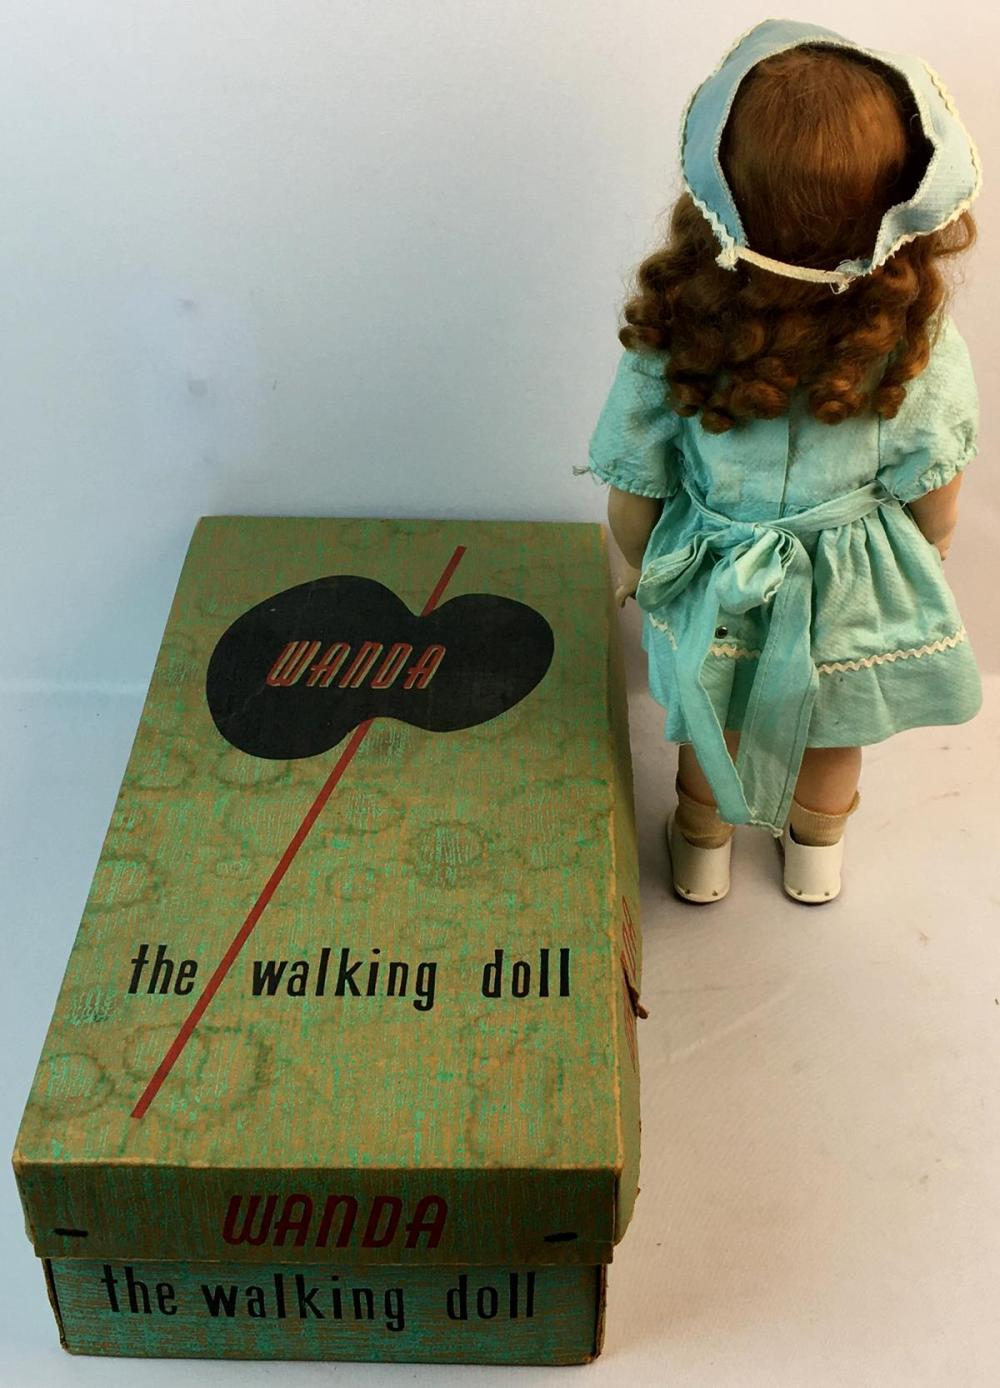 Vintage 1950's Wind Up Wanda The Walking Doll by Advance Doll Co. w/ Box WORKS